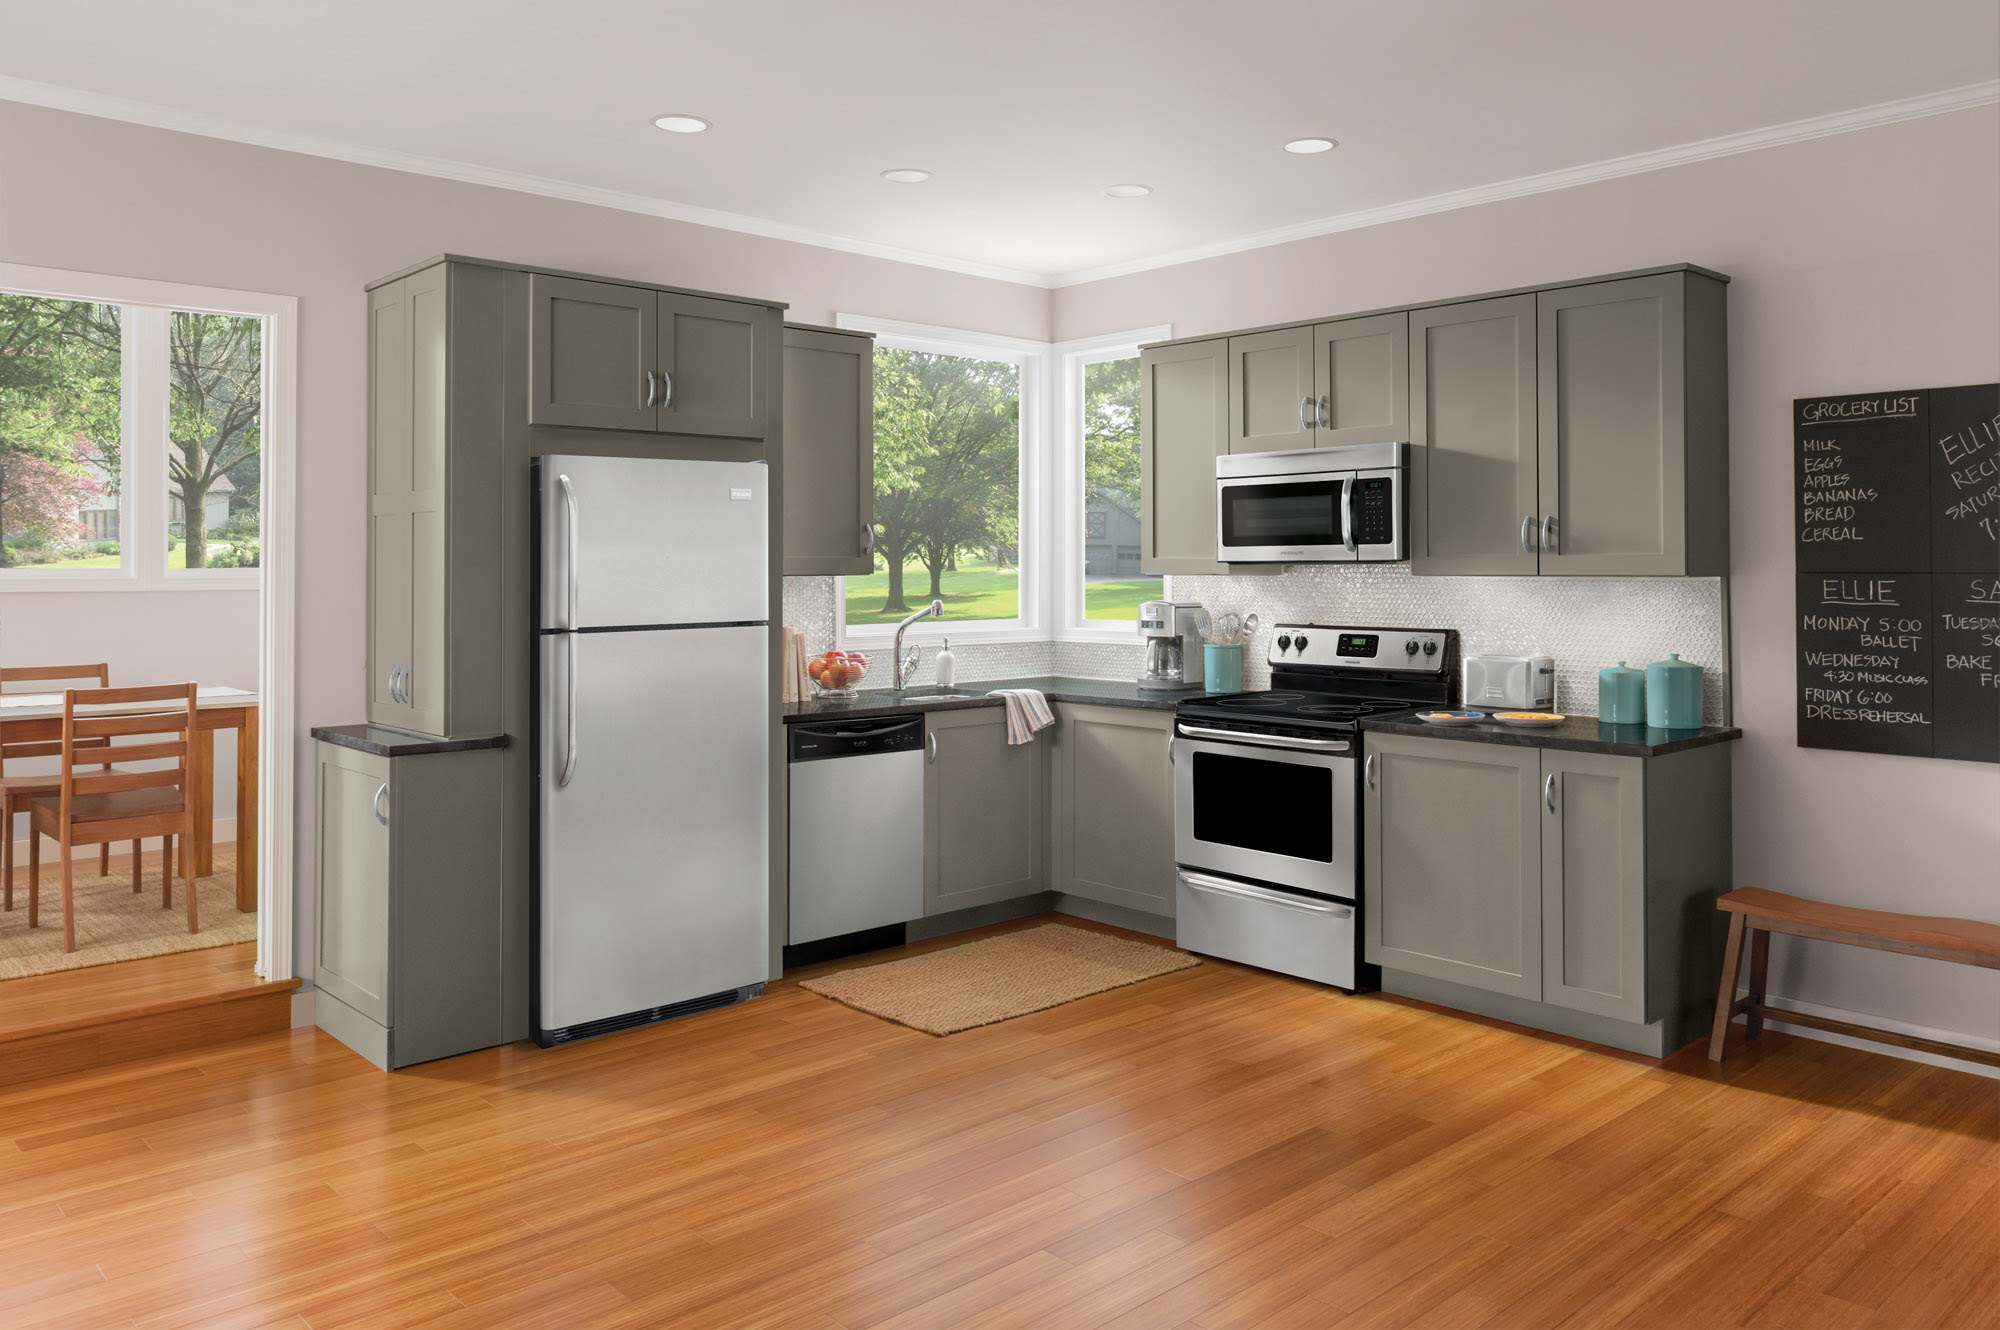 Kitchen Appliance Package Deals